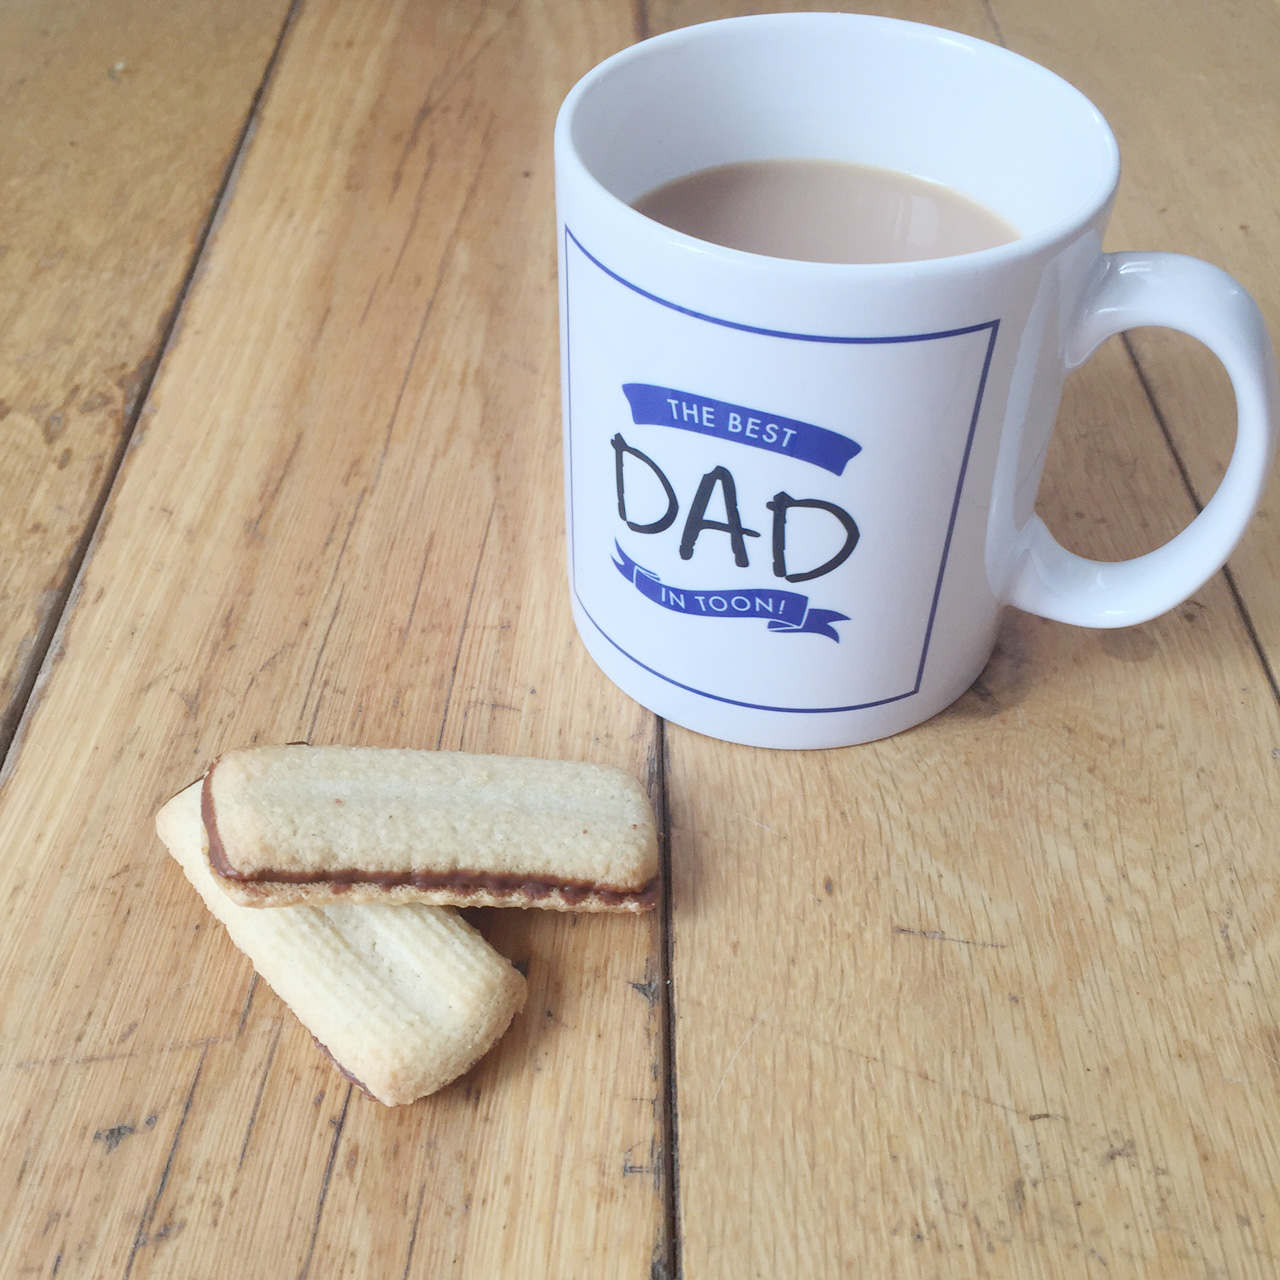 10 Father's Day Gift Ideas with a North East Twist - Best Dad in Toon Mug